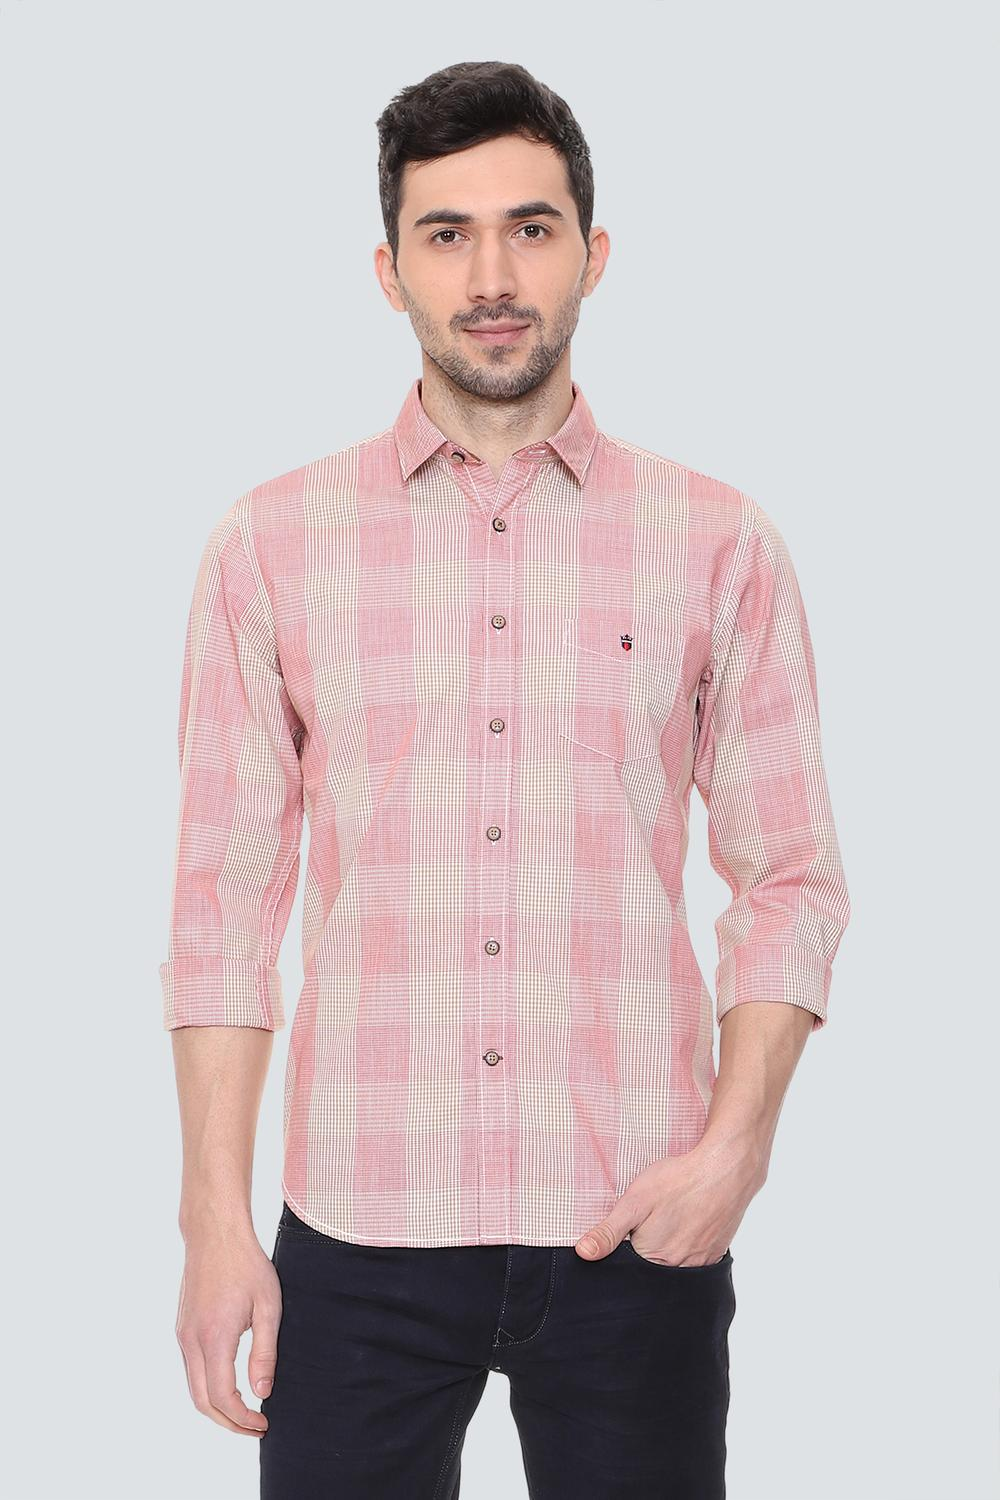 72545d9bf1 LP Shirts, Louis Philippe Pink Shirt for Men at Louisphilippe.com